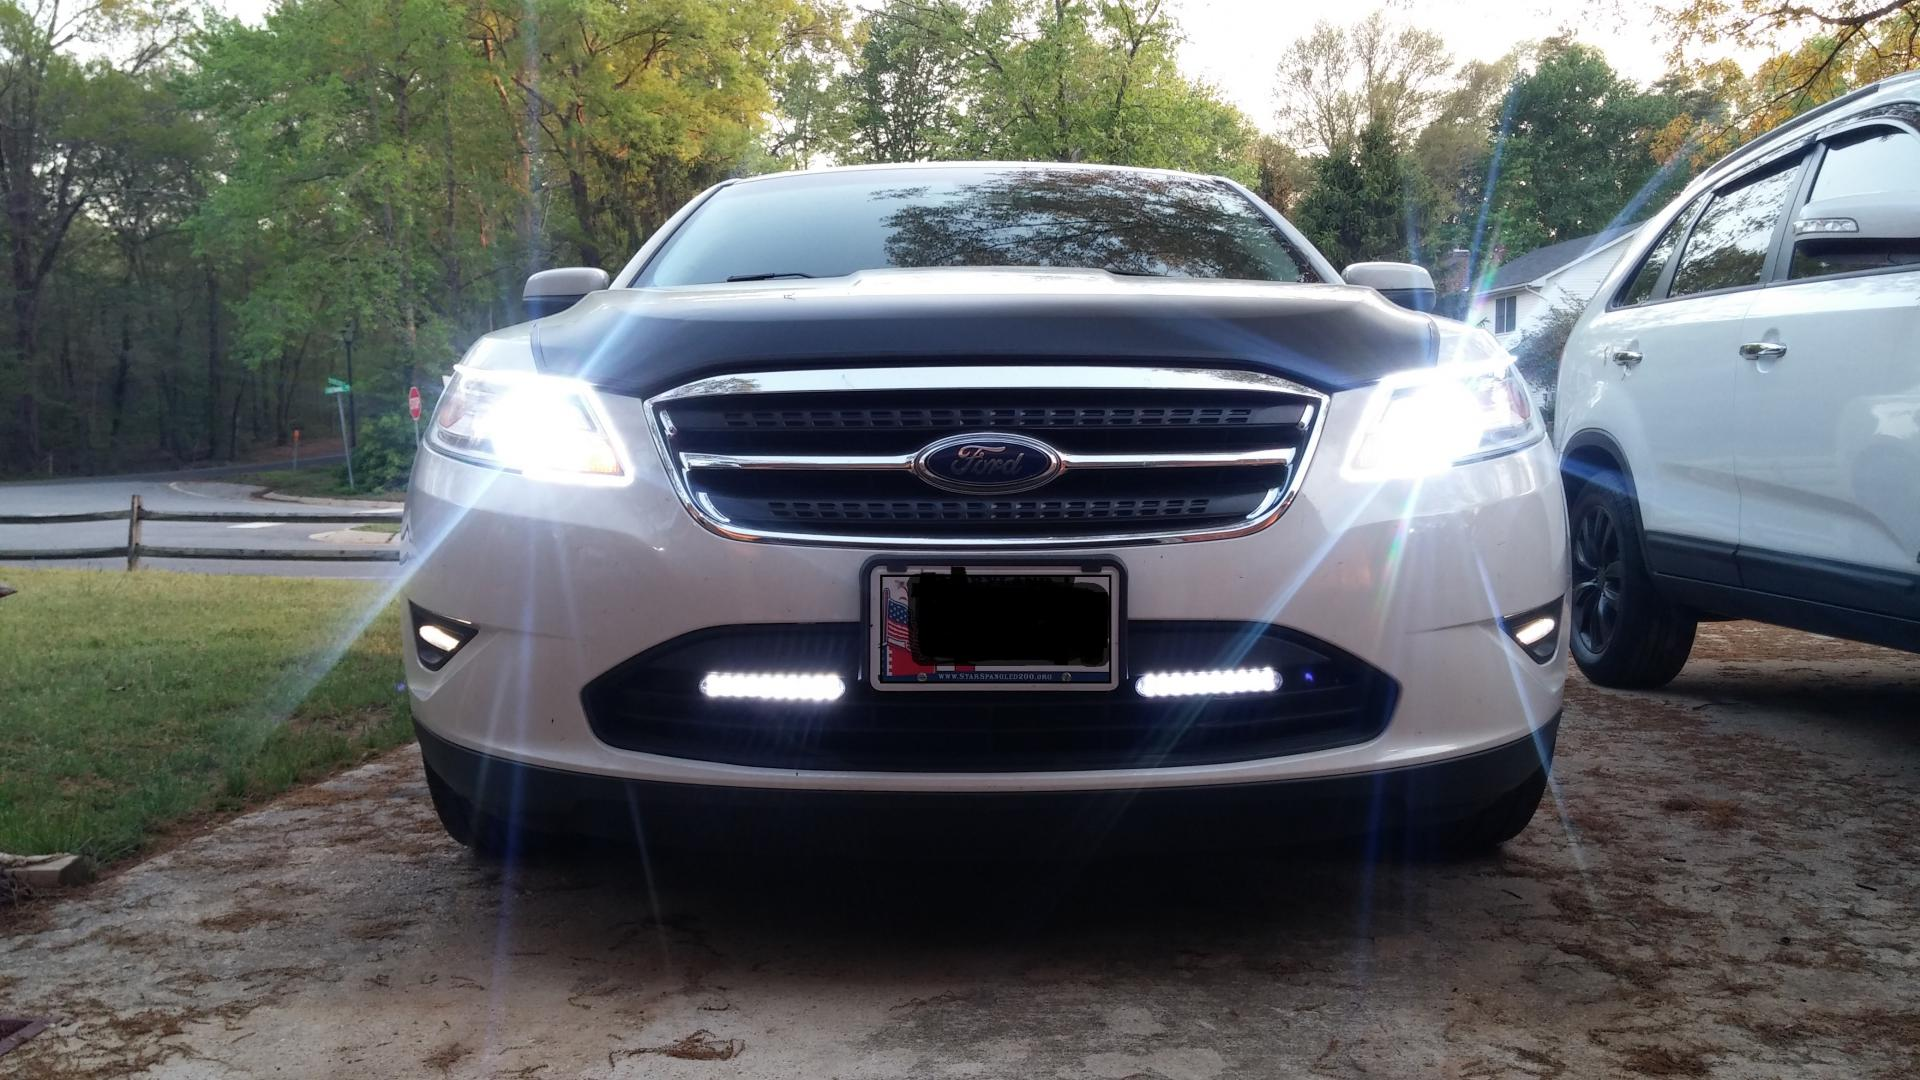 6k 55w Hid Headlights With Led Strips And Led Drls